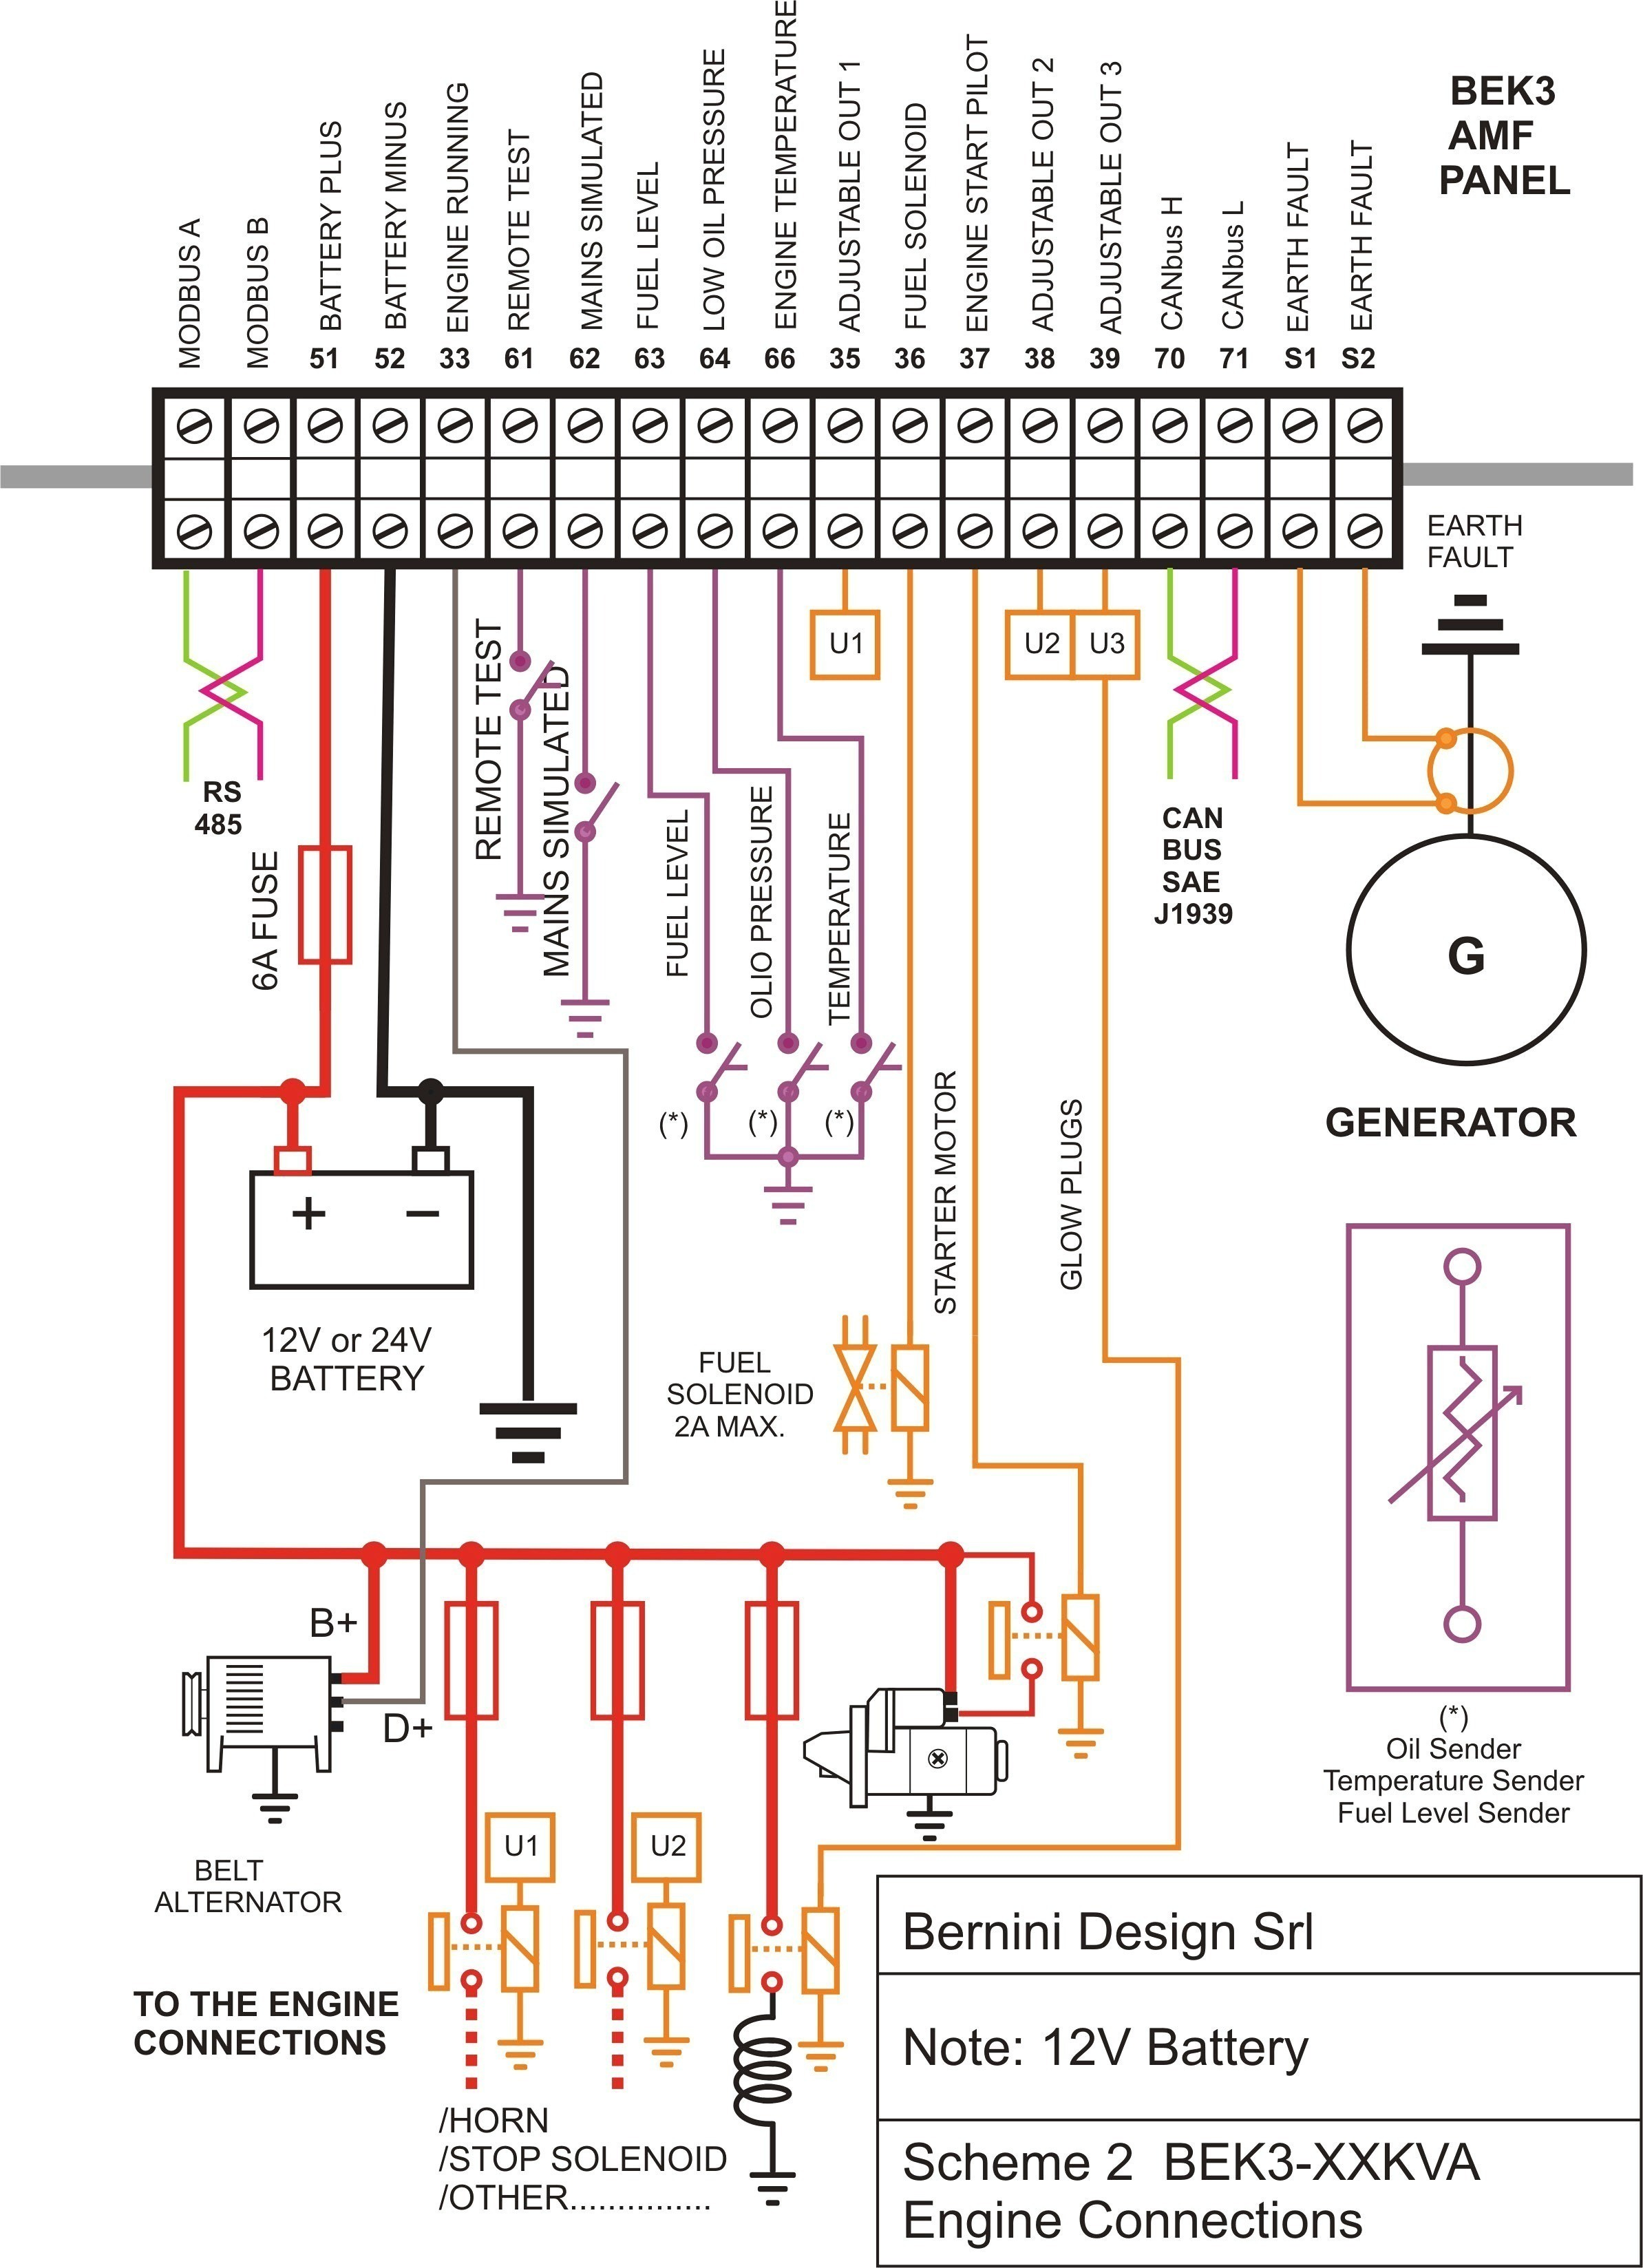 Tarp Switch Wiring Diagram Wire Data Schema Electrical Electric Explained Diagrams Rh Dmdelectro Co Reversing 2 Way